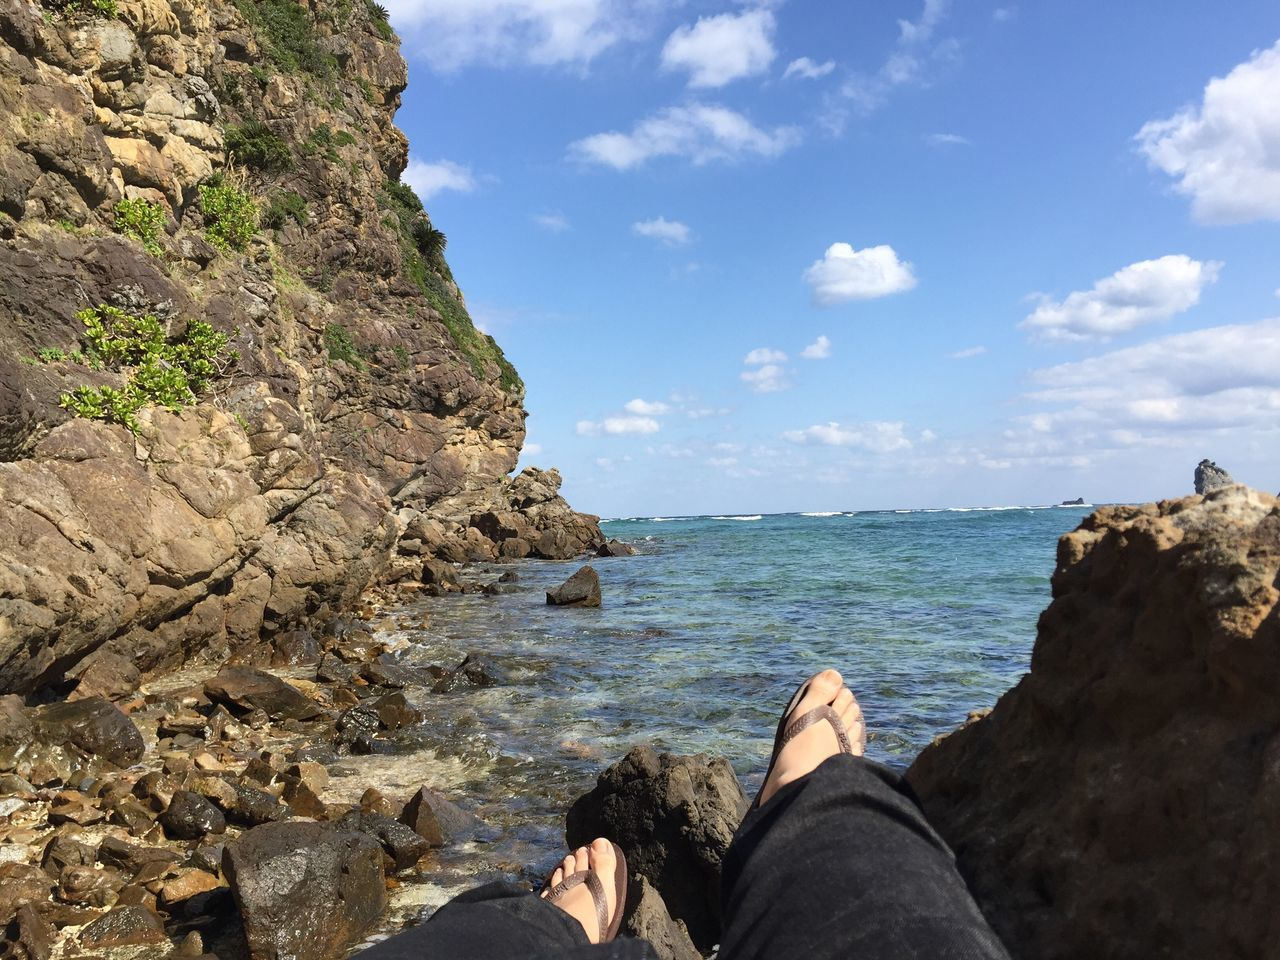 Low Section Human Leg Sea Personal Perspective Rock - Object Real People Lifestyles Water One Person Nature Human Body Part Beauty In Nature Leisure Activity Scenics Women Relaxation Outdoors Day Sky Men Winter Sea Amami Island